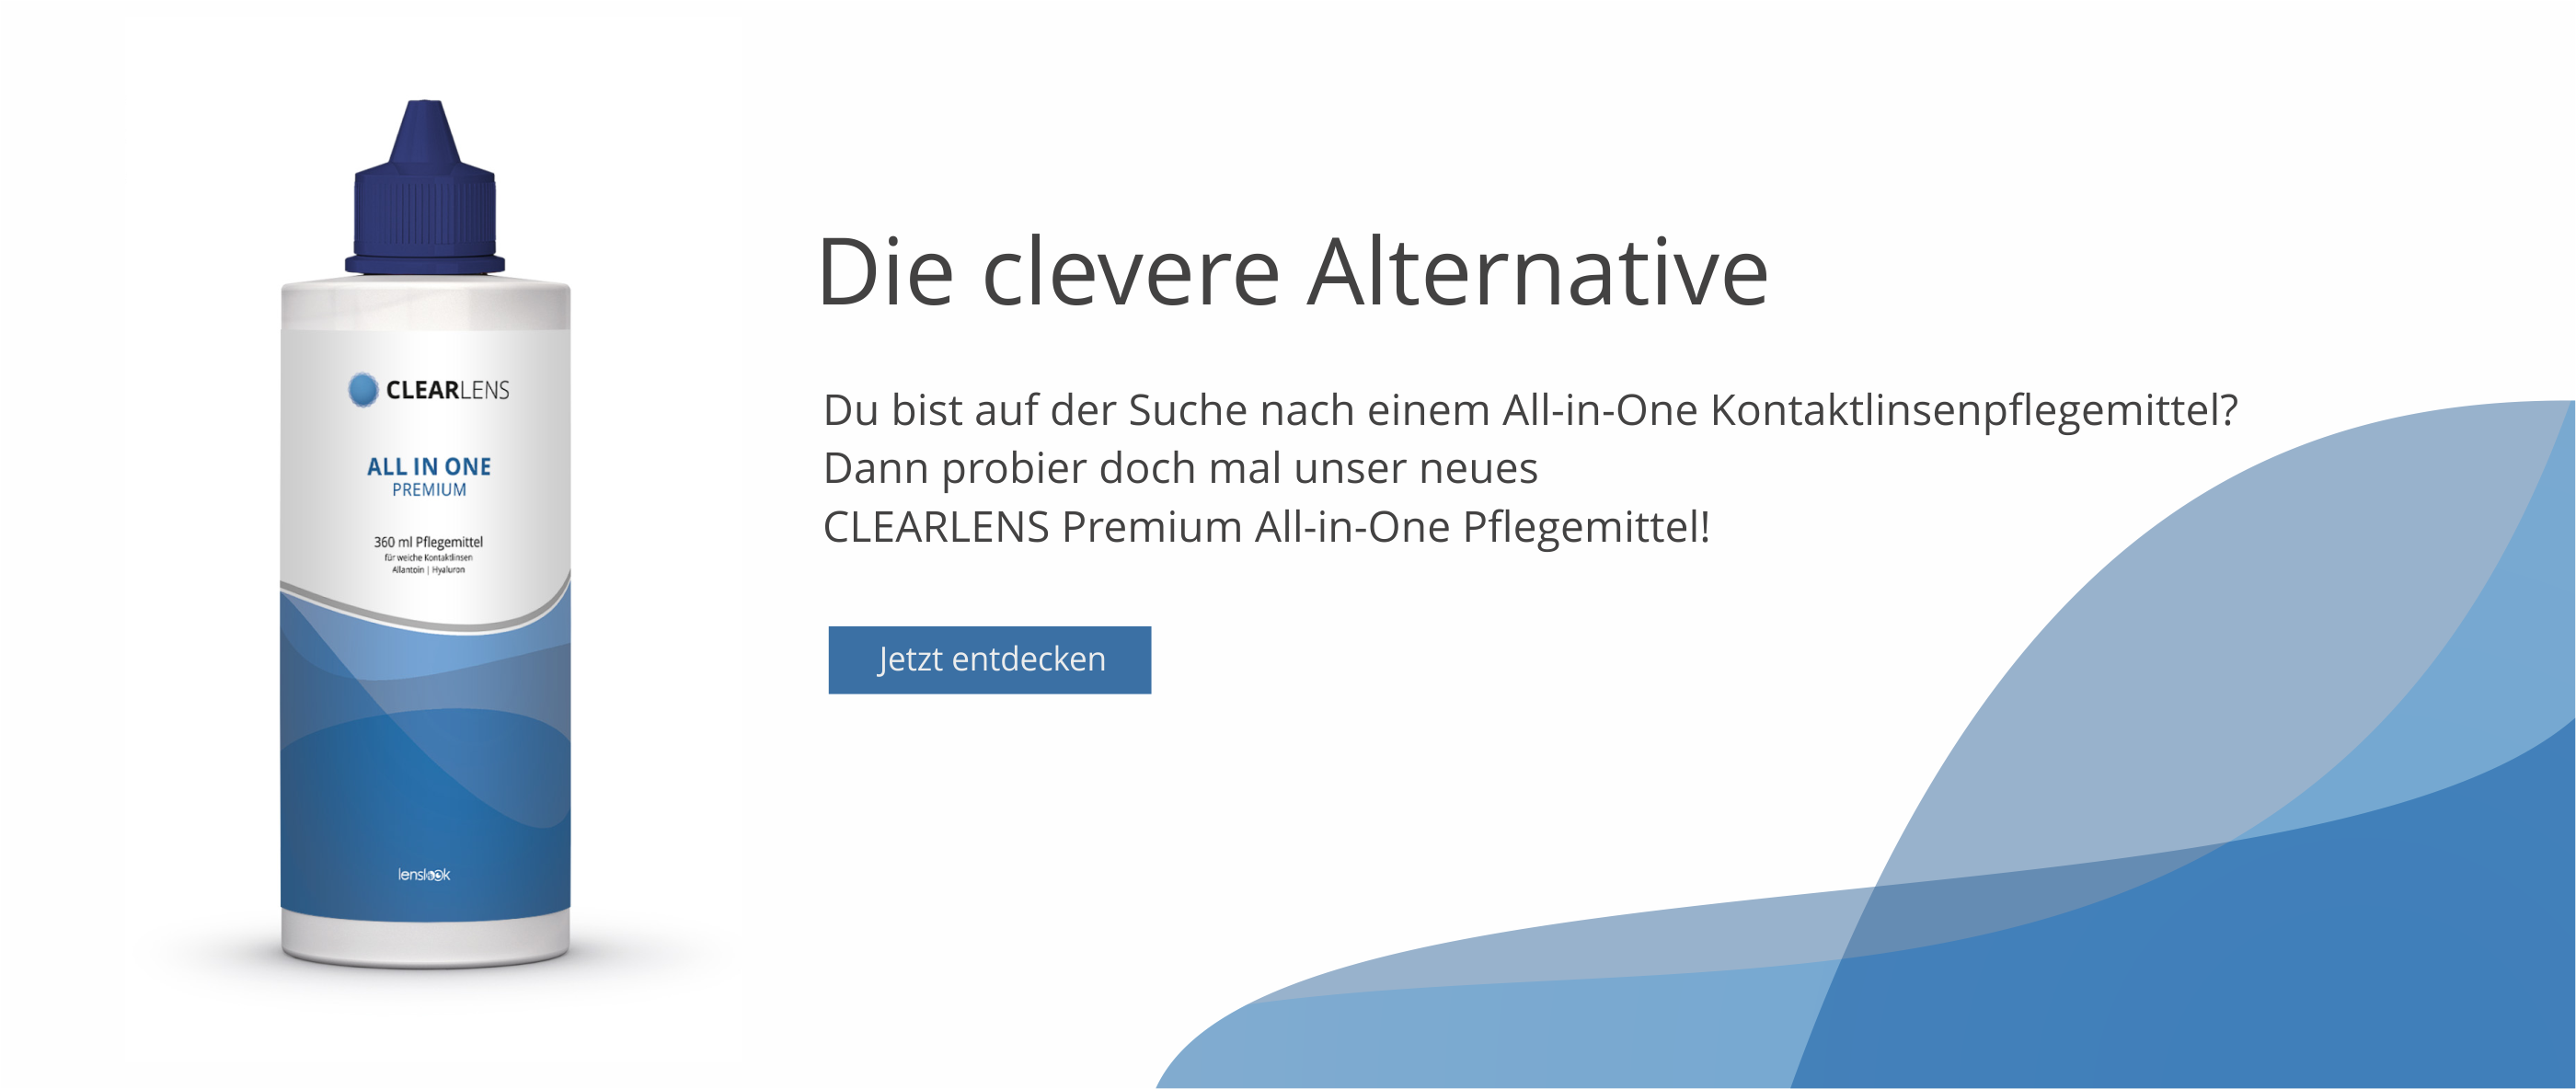 ClearLens_Alternative